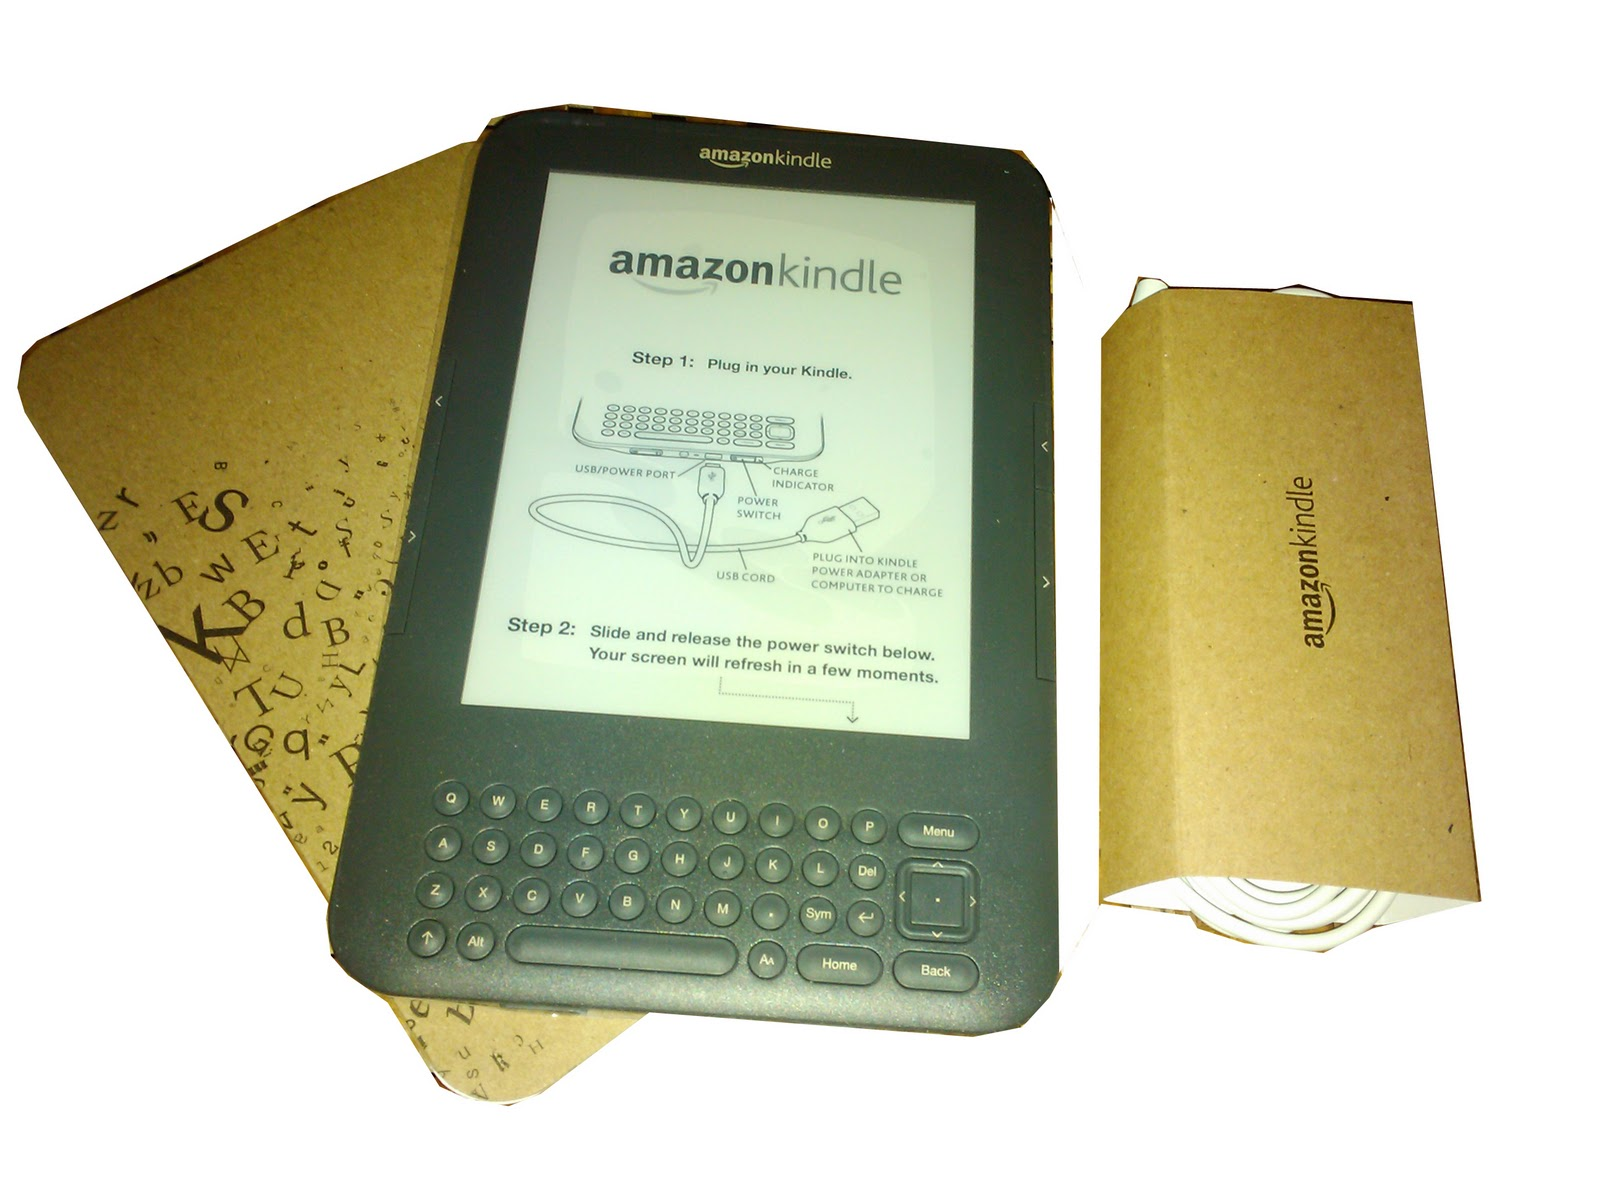 Home images register my kindle on amazon register my kindle on amazon